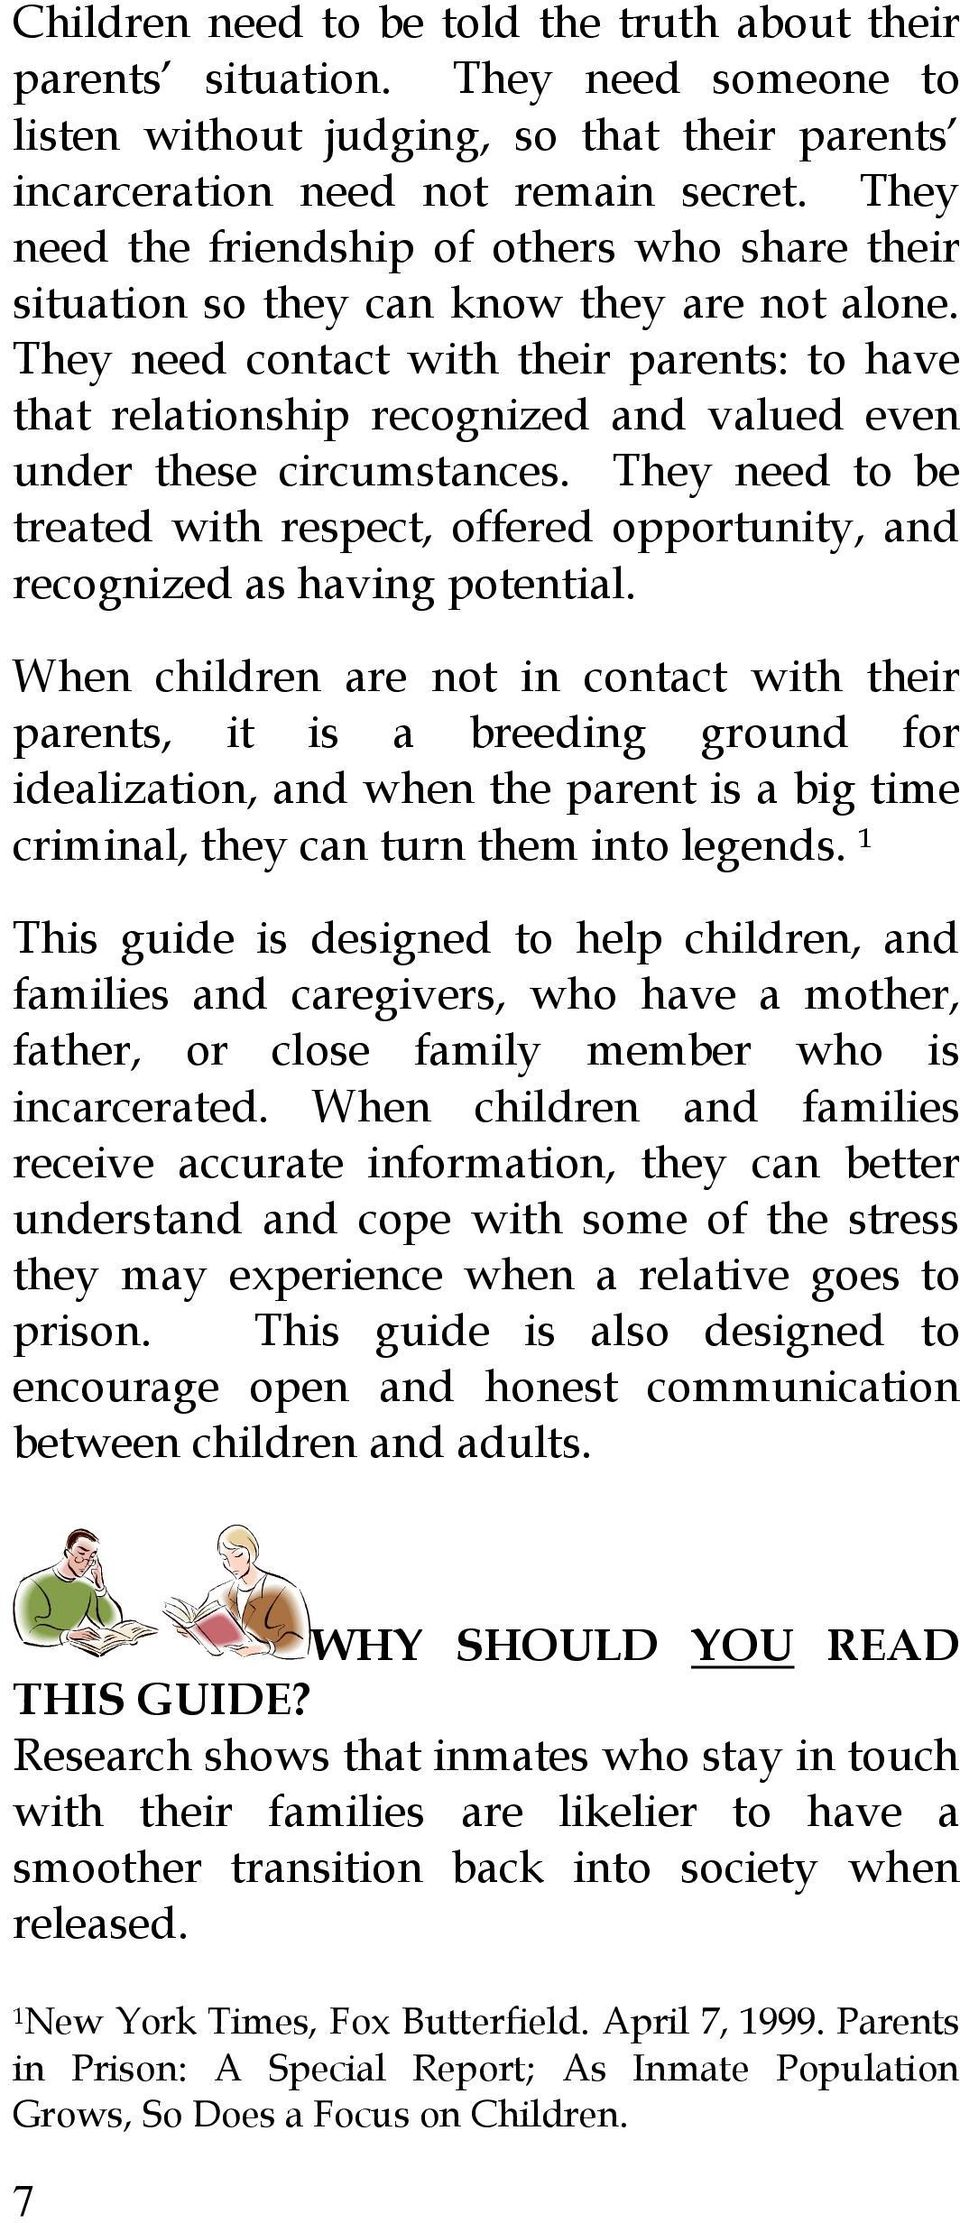 They need contact with their parents: to have that relationship recognized and valued even under these circumstances.